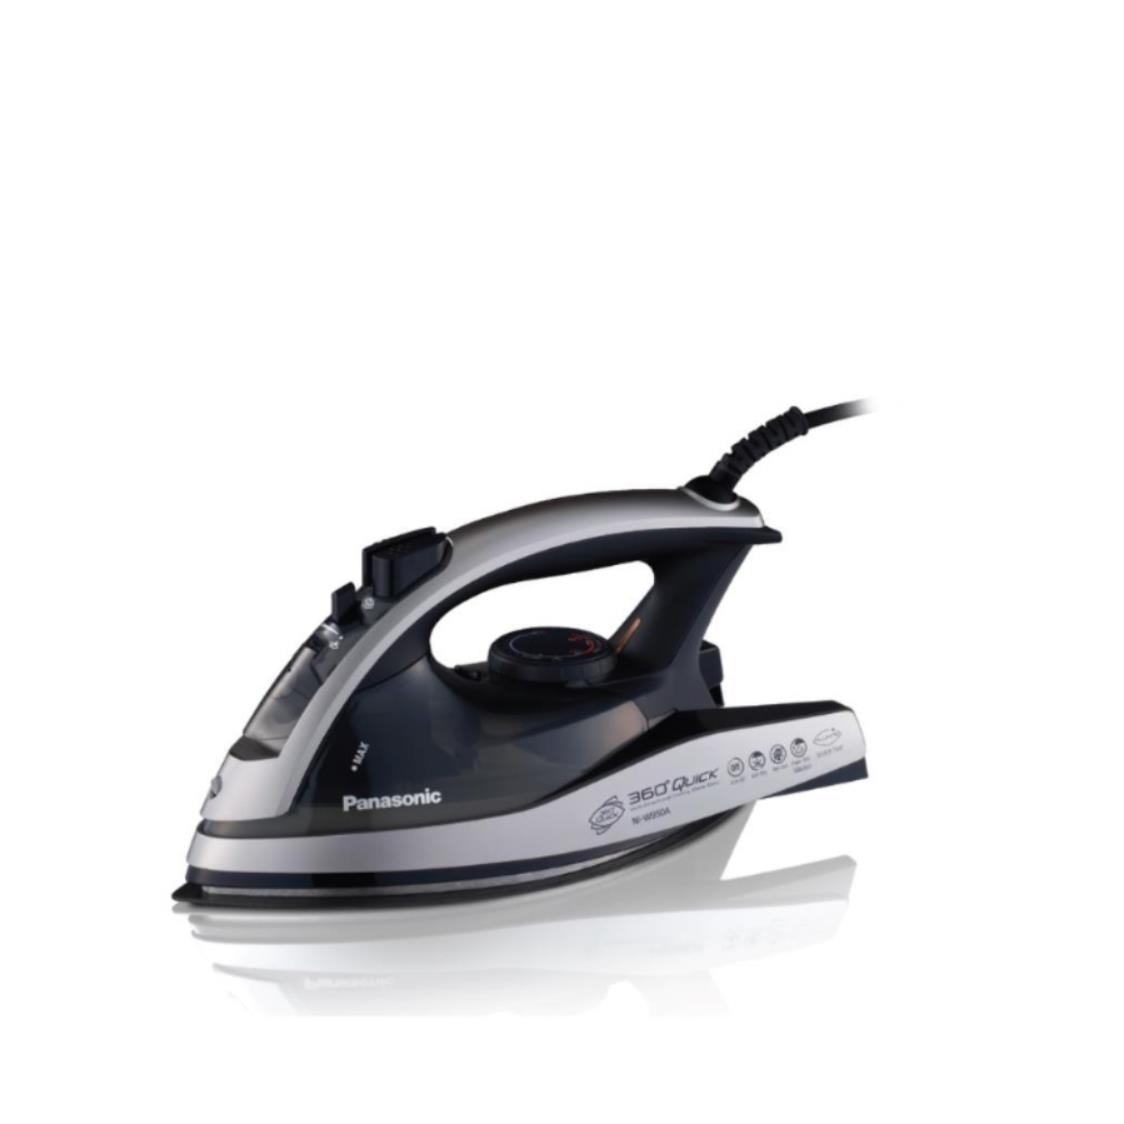 Electric Iron NI-W950ALSH